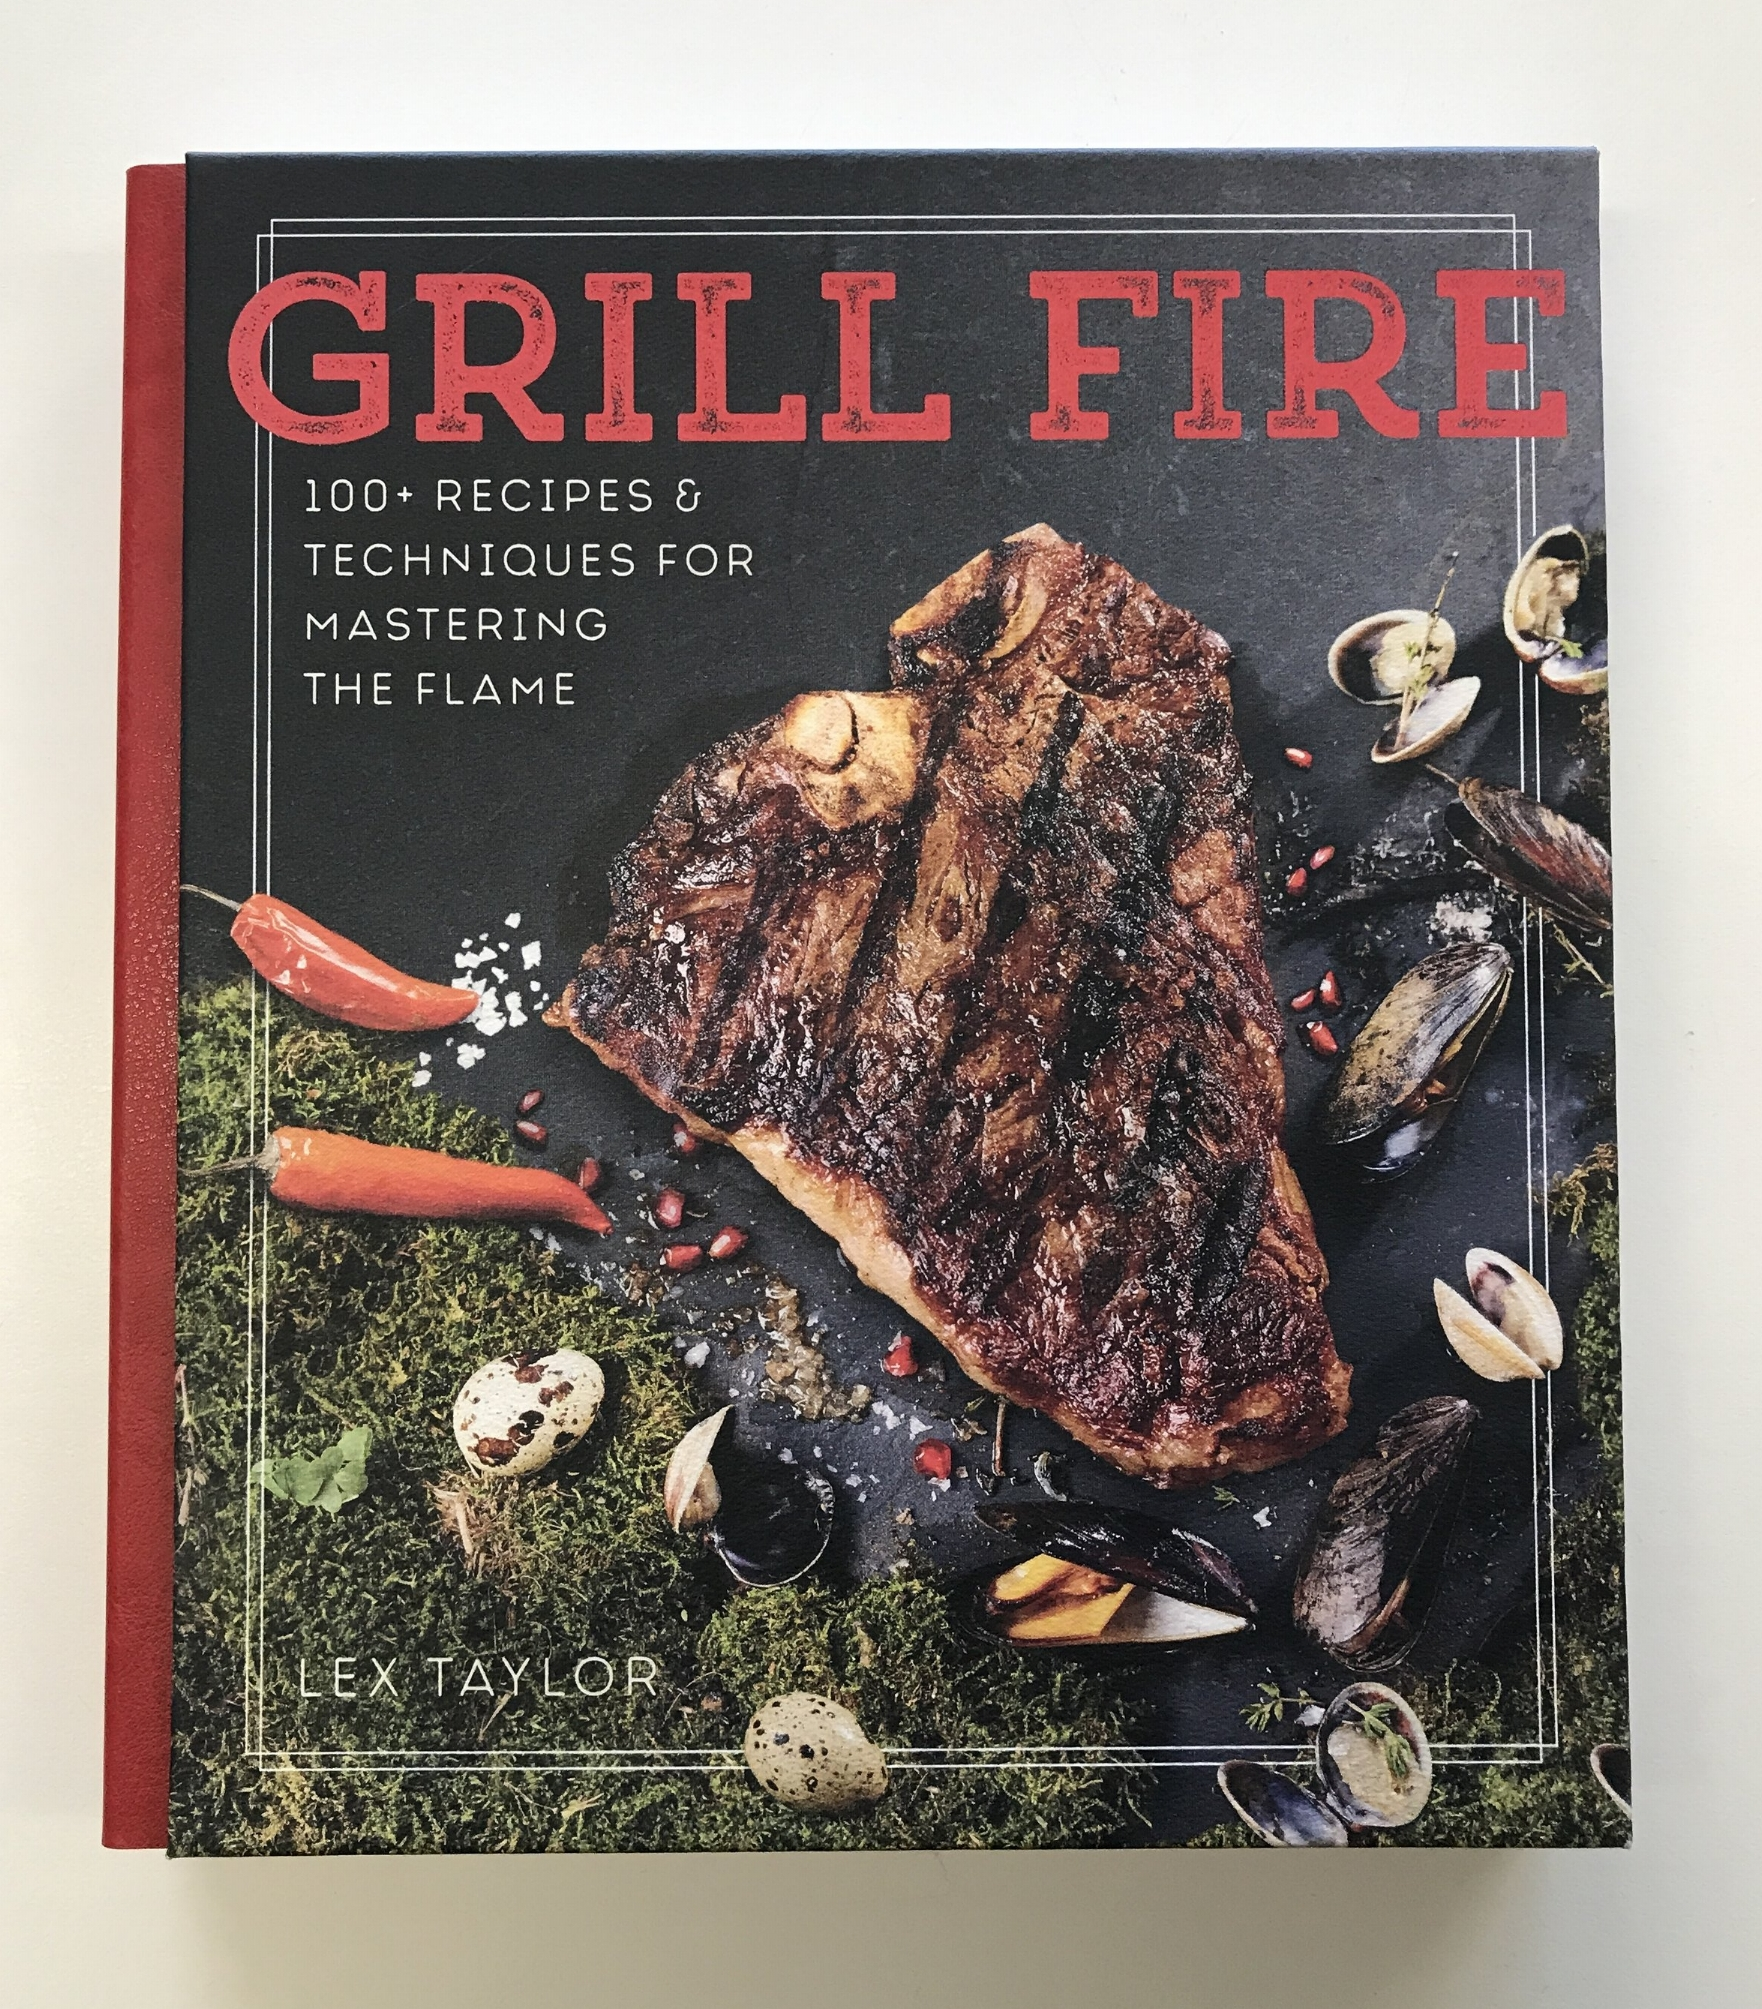 This cookbook is perfect for dads who love to grill and need inspiration for new recipes. There are great recipes for burgers, hot dogs, and seafood as well as sauces and toppings for those dishes. $24.95